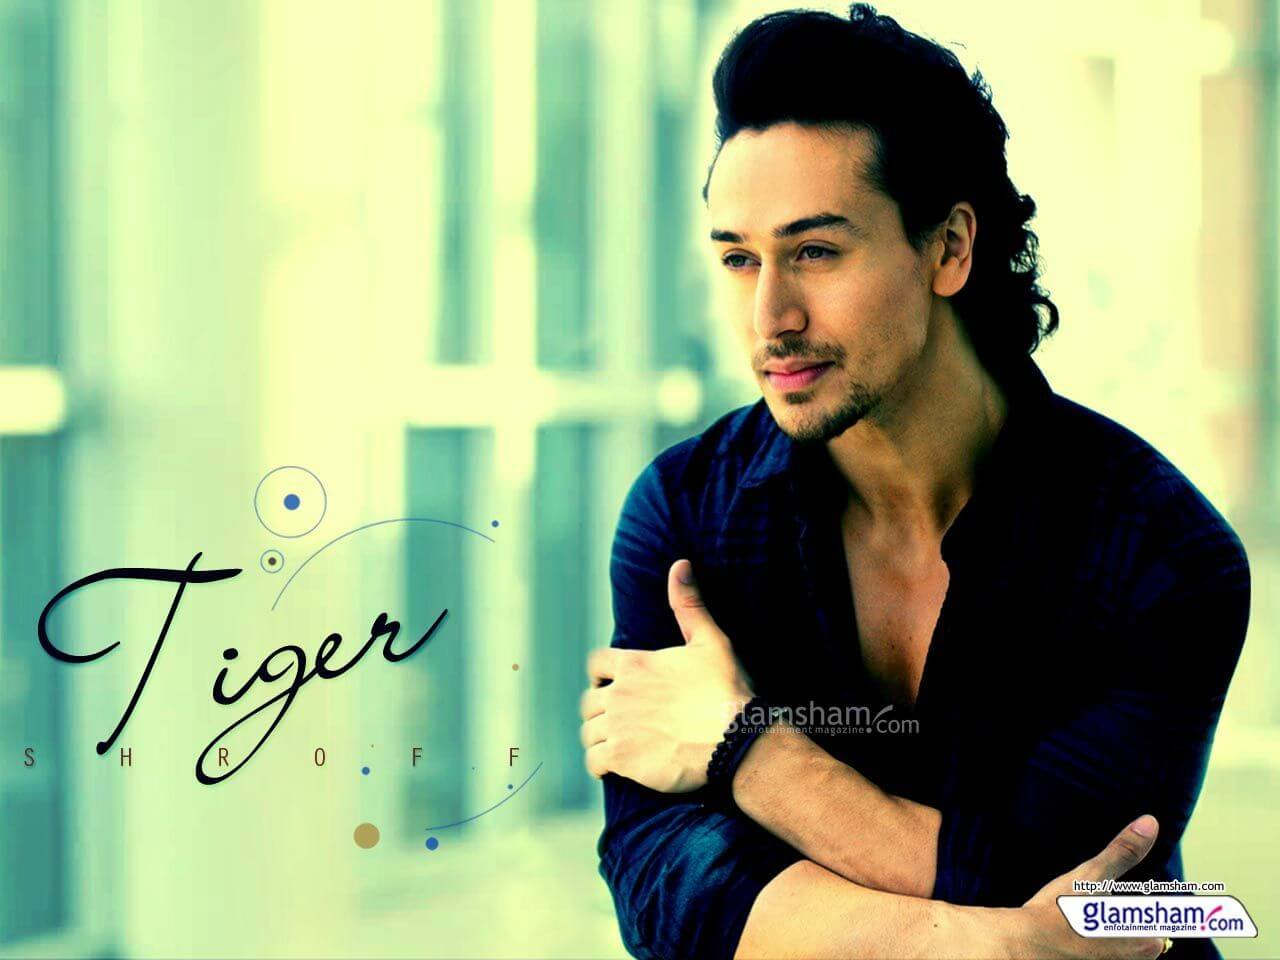 Tiger Shroff Age, Photos(image), Song, Movie, Height, Girlfriend, Sister, Date Of Birth, Net Worth, Biography, Education, Awards, Instagram, Twitter, Facebook, Wiki, Imdb, Youtube (21)